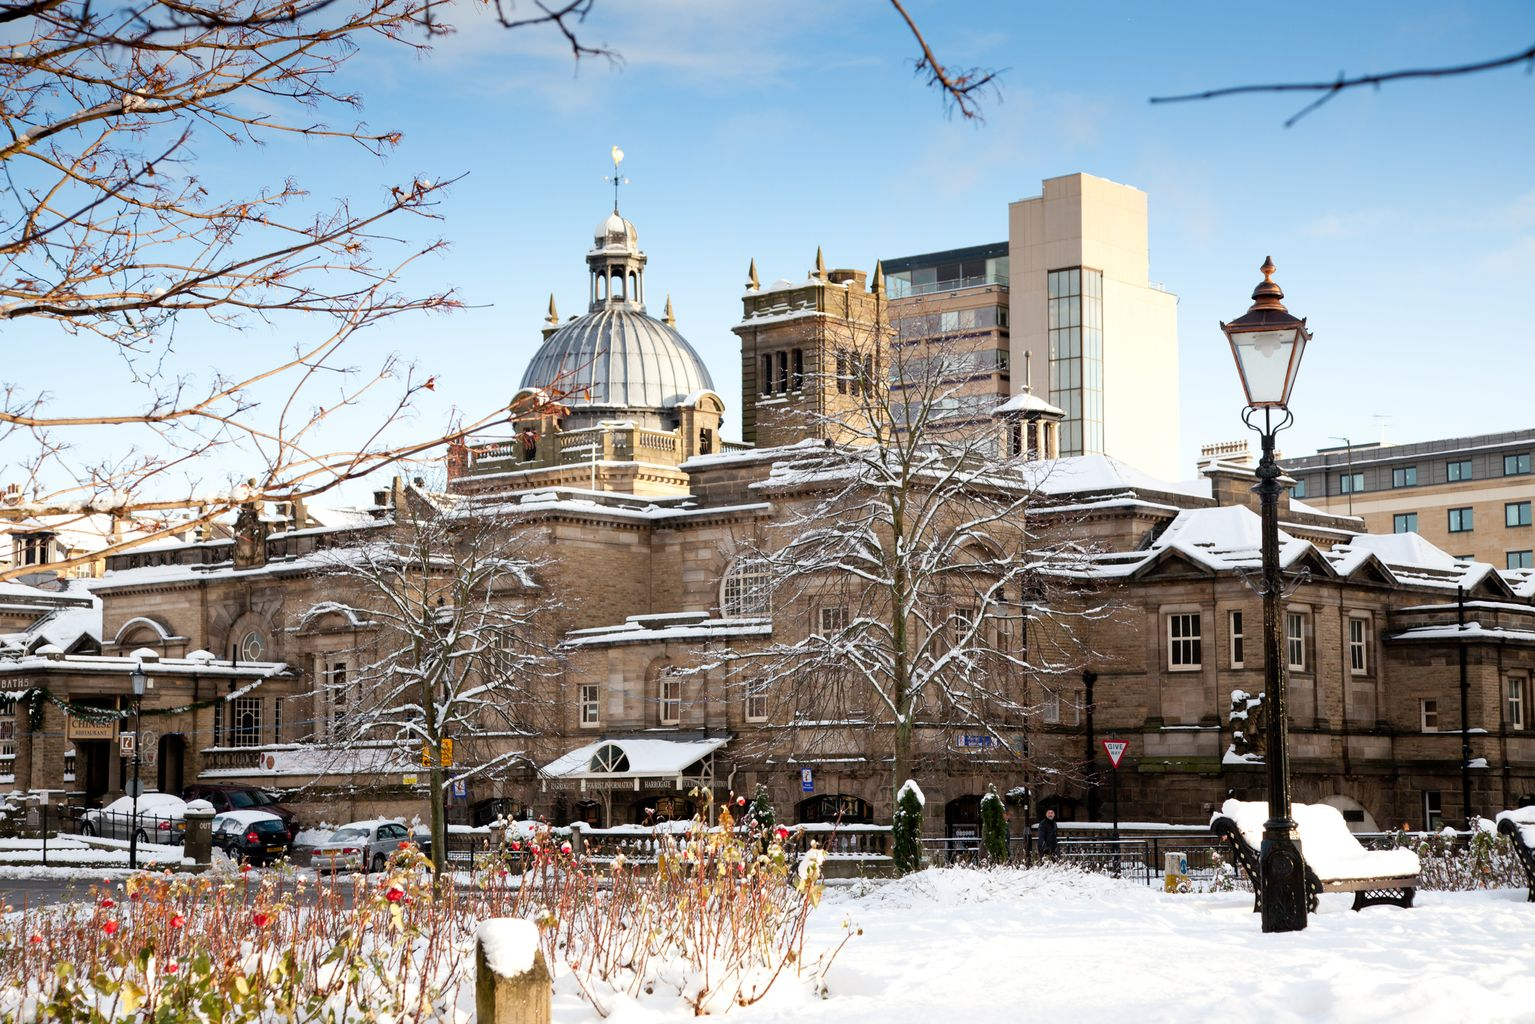 8 fascinating facts about Harrogate & The Yorkshire Dales